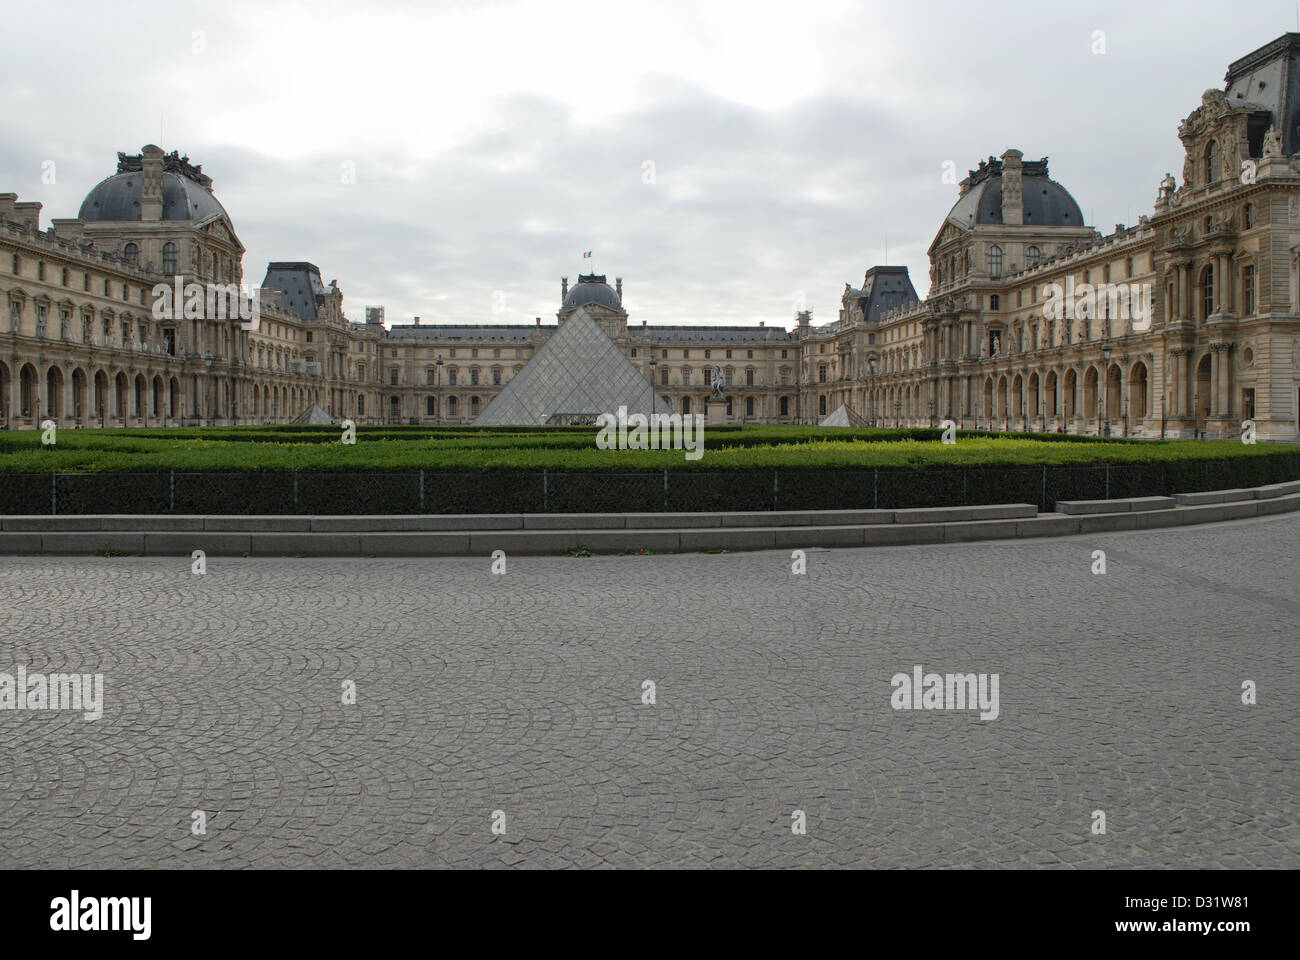 General-View of the portion of Louvre Museum complex, showing glass pyramid in the centre, Paris, France. - Stock Image